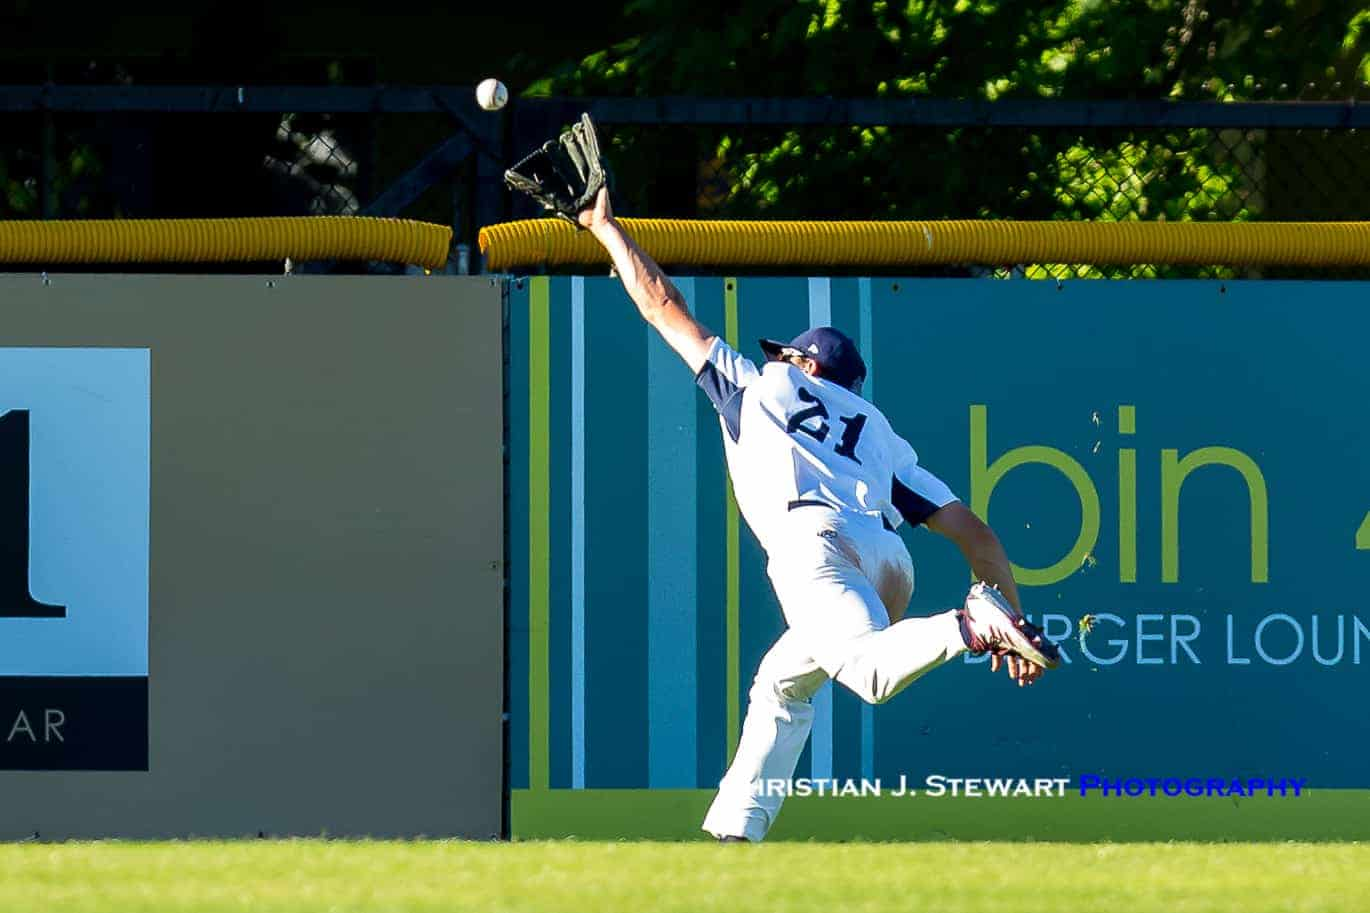 bd2ec31db5b761 Victoria center fielder Hunter Vansau would make a spectacular catch in the  third inning Saturday to take an extra base hit away from Walla Walla s  Nick ...